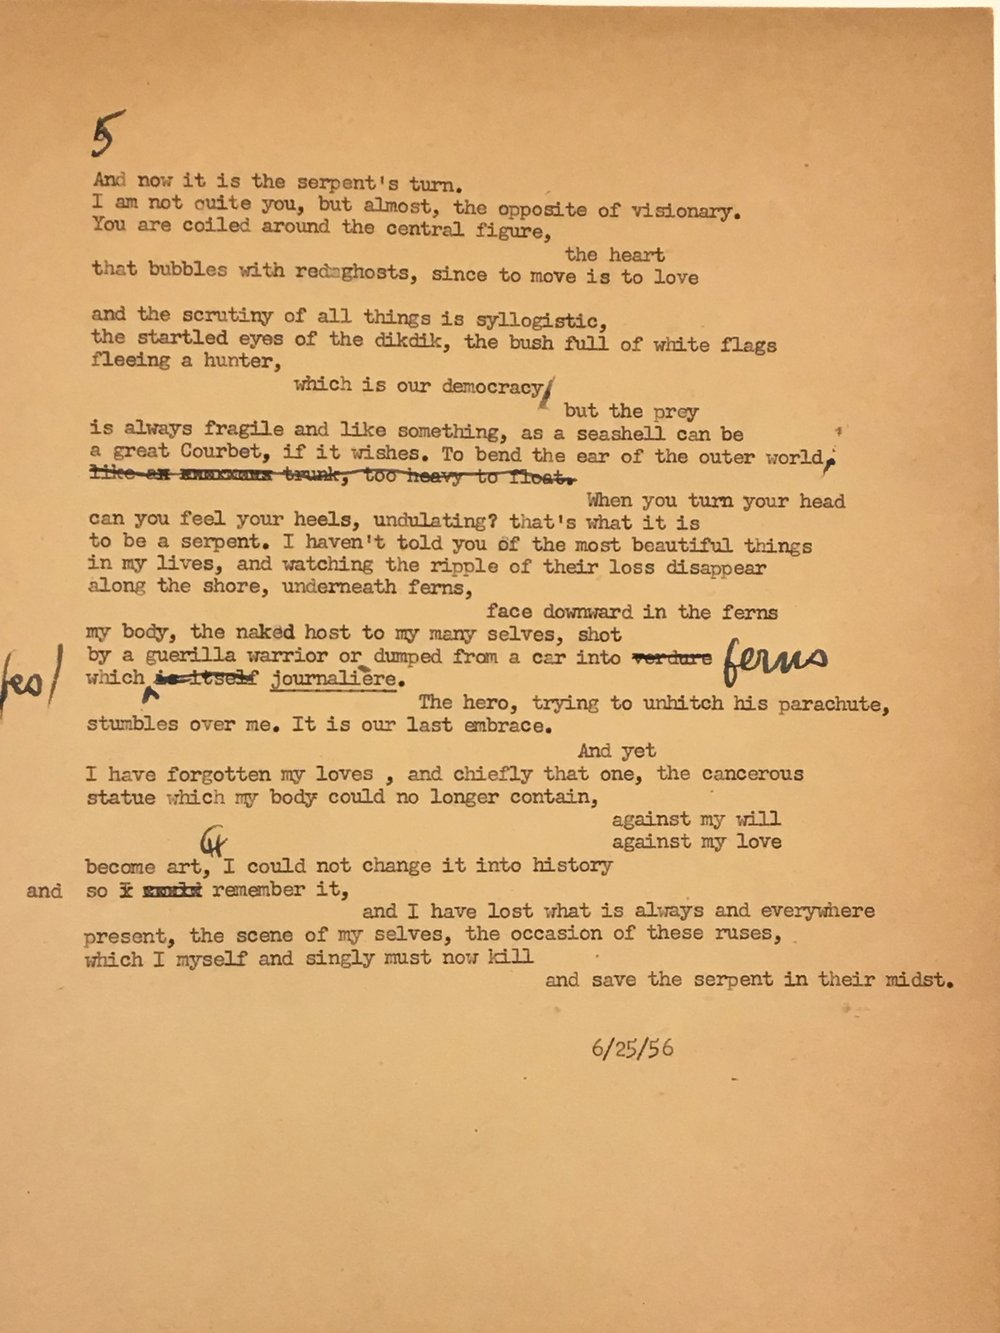 """Frank O'Hara, """"In Memory of My Feelings"""" (Section 5) (Photography of manuscript from Tiber Press Archives, Harvard University)"""